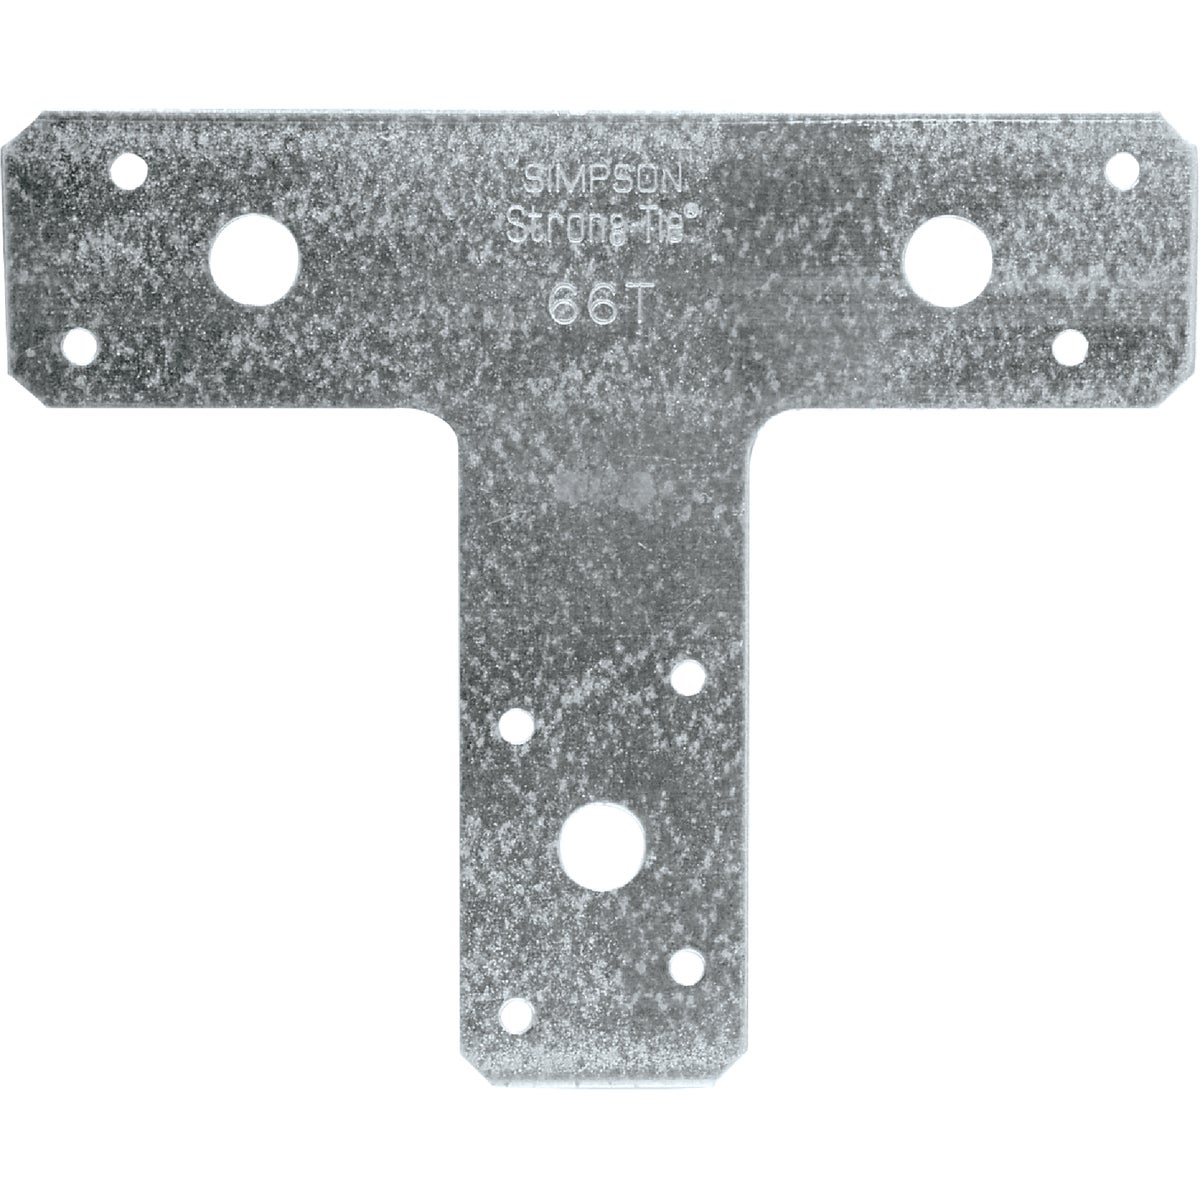 "6""X6"" T-STRAP - 66T by Simpson Strong Tie"